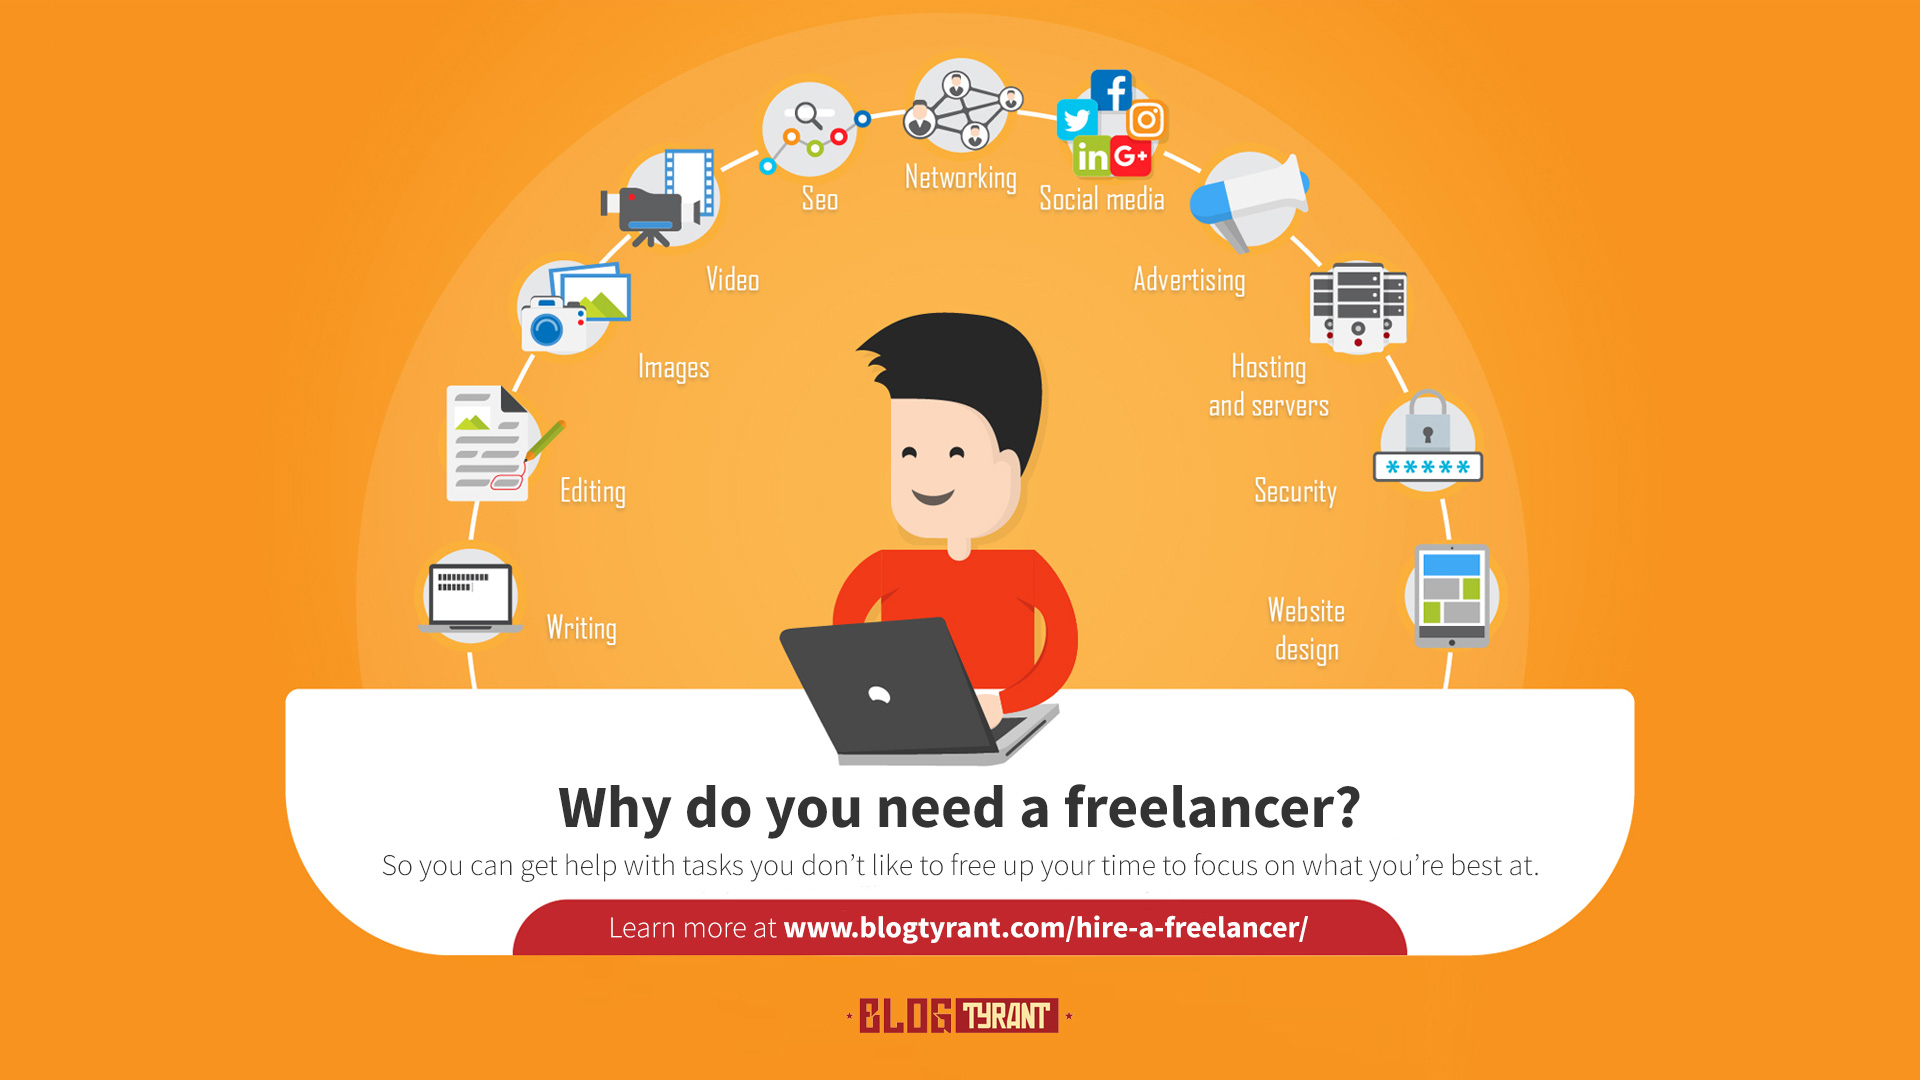 hire a freelancer graphic